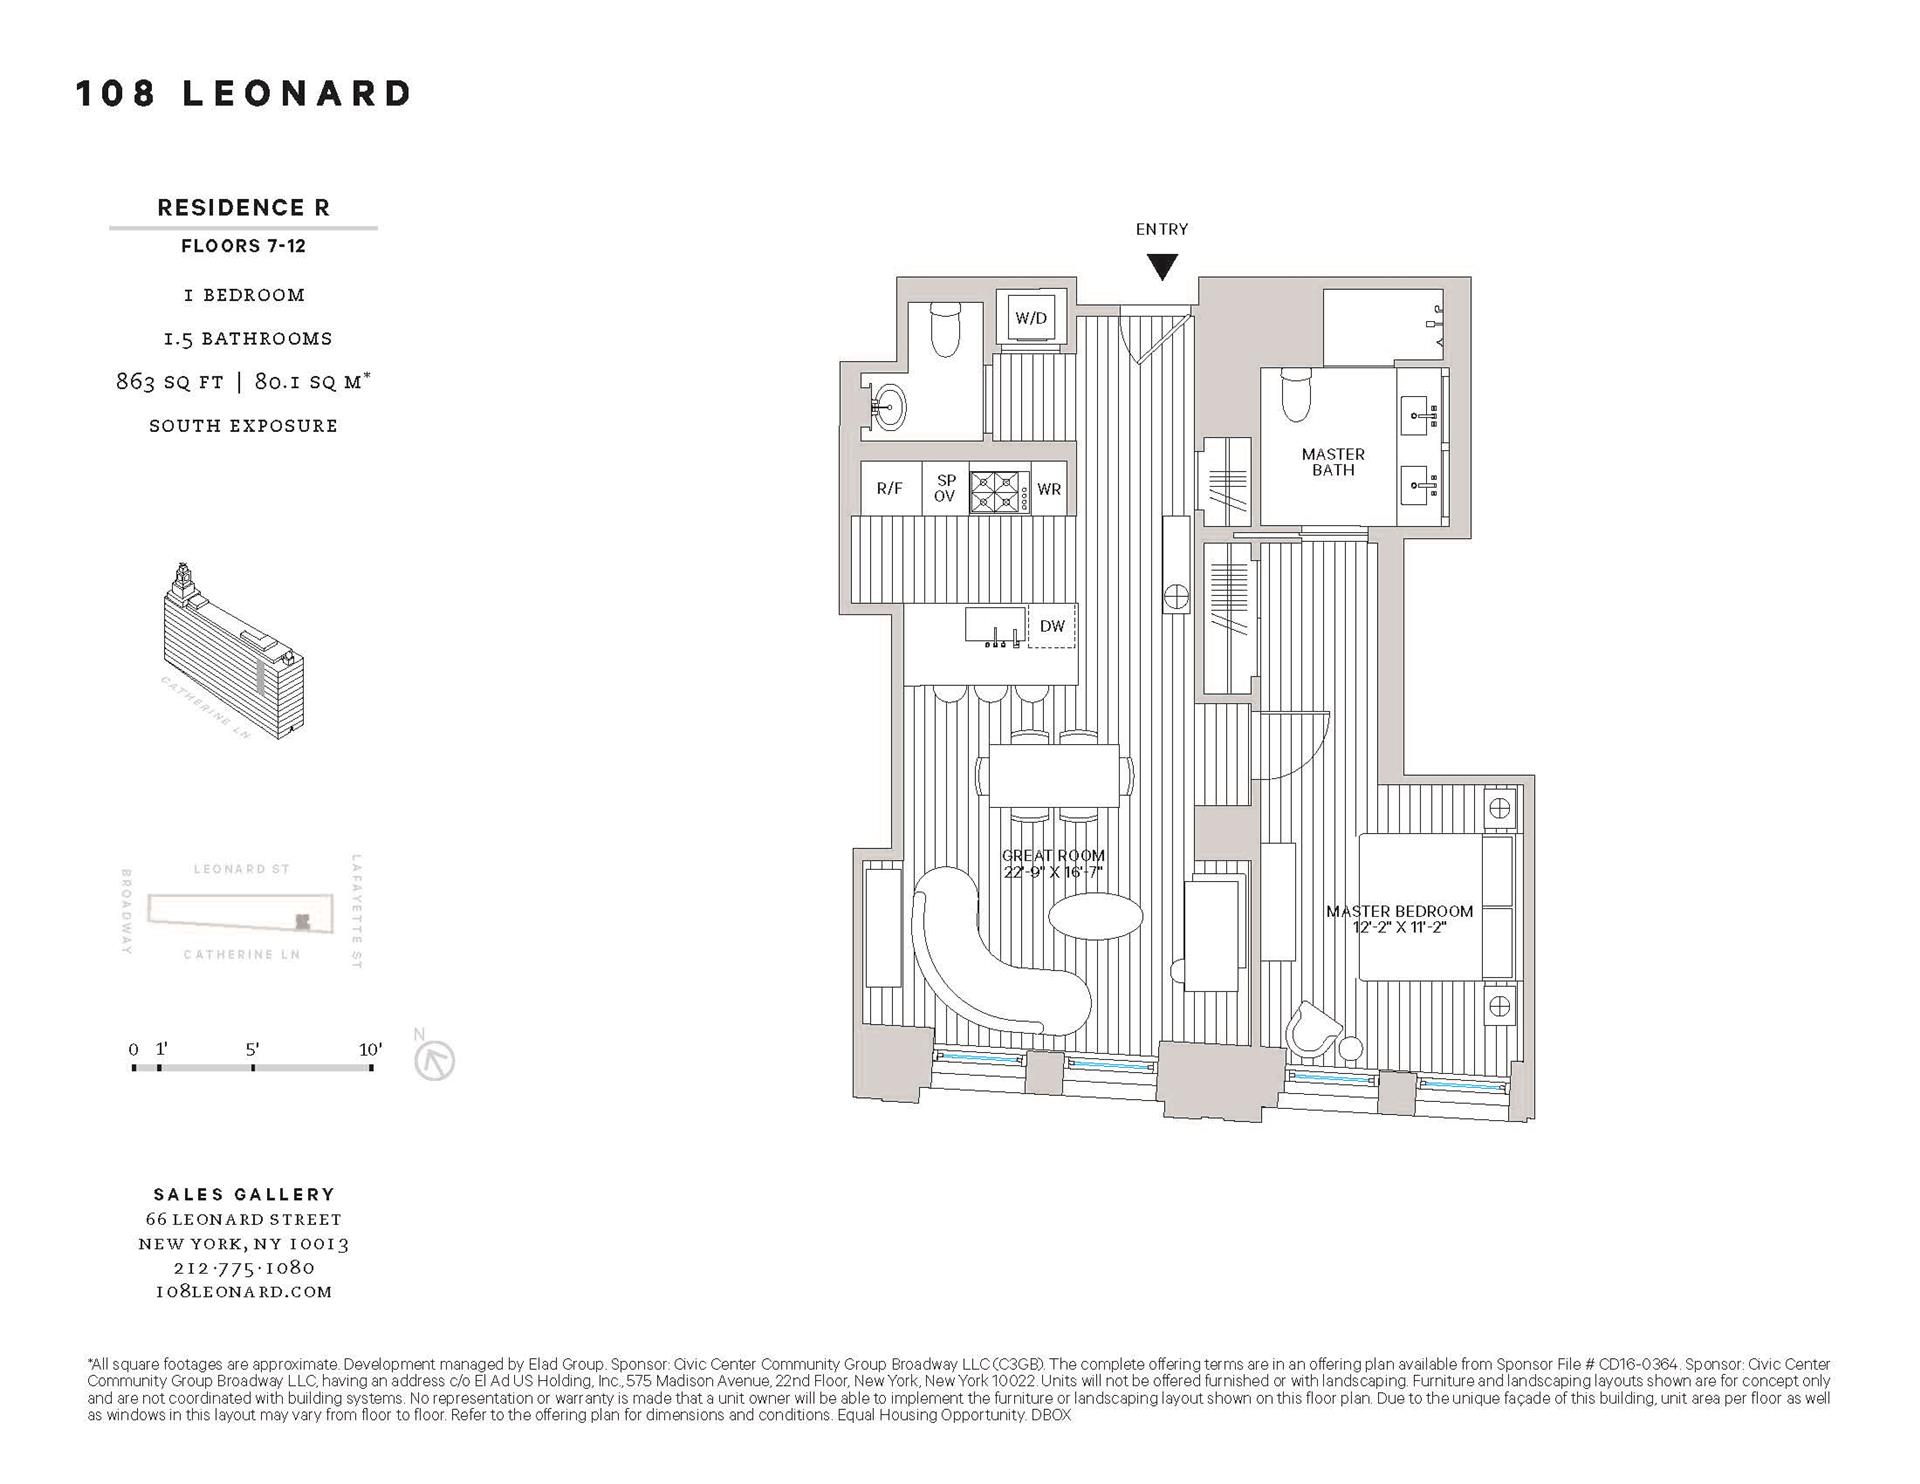 Floor plan of 108 Leonard Street, 8R - TriBeCa, New York